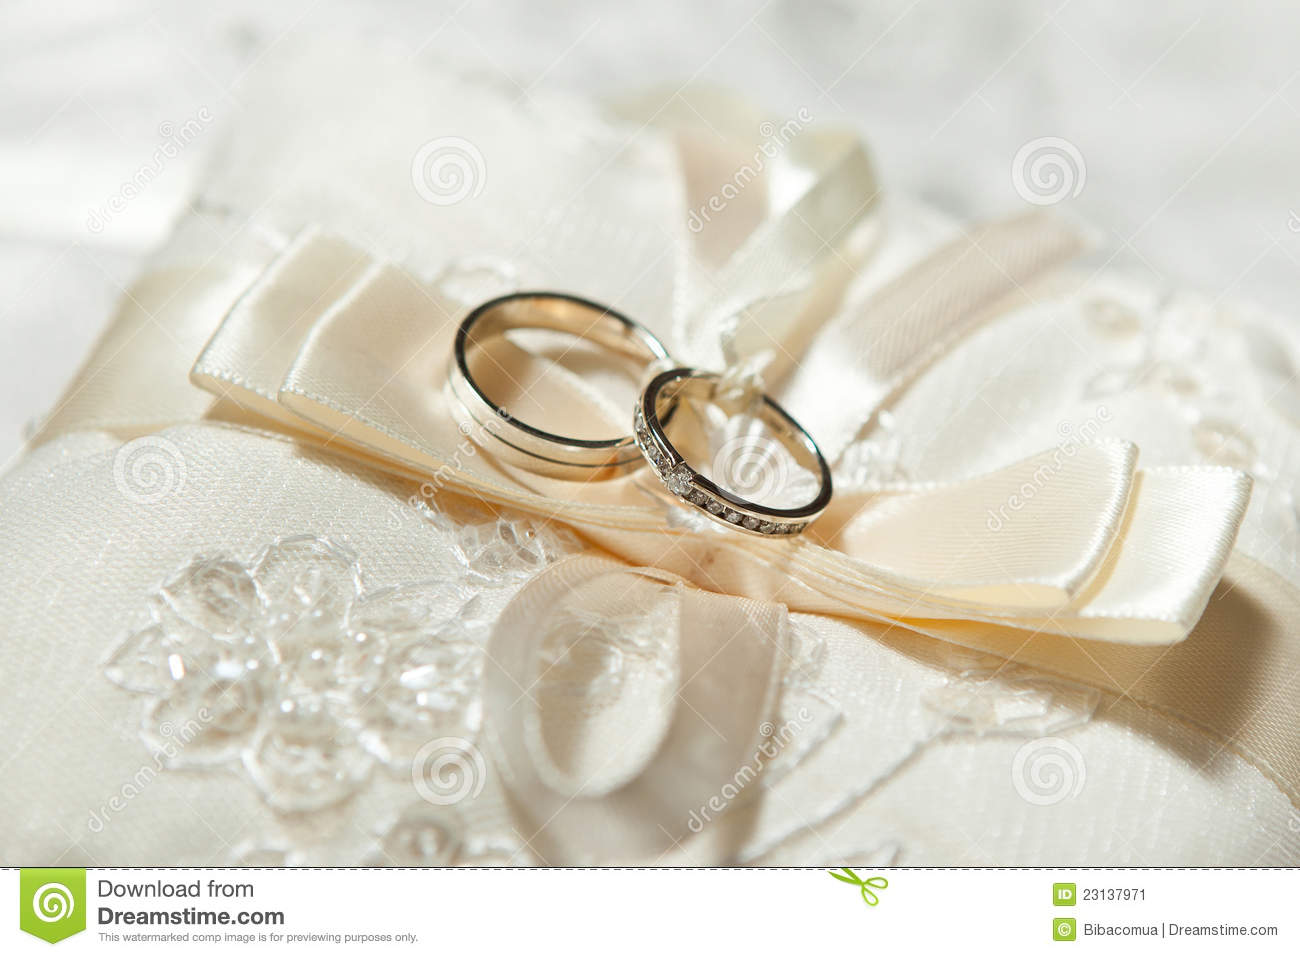 Beautiful Wedding Rings Stock Image - Image: 23137971